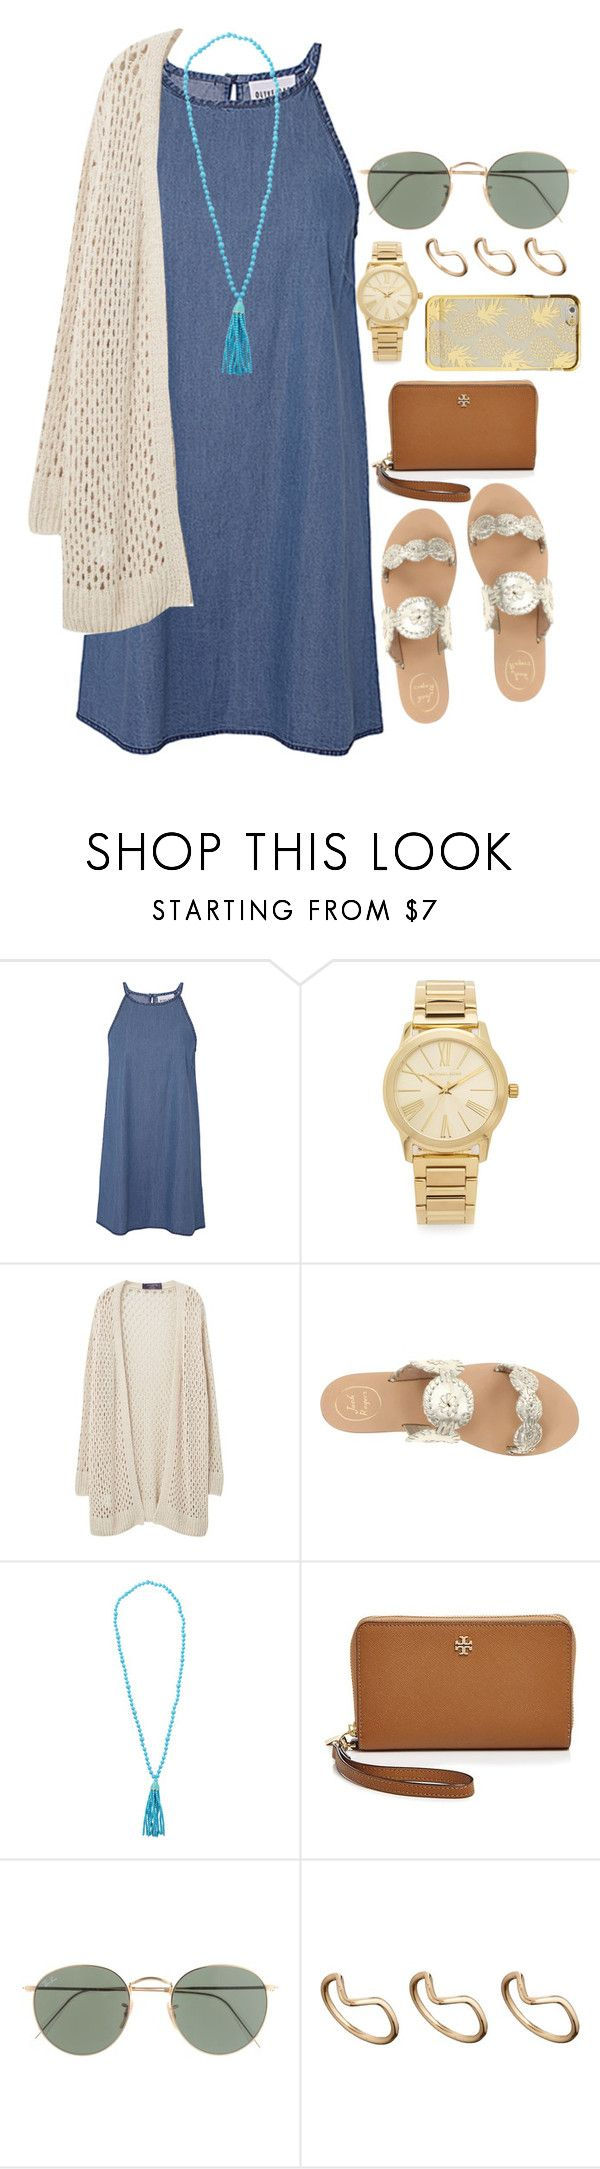 """Today was my last first day of school"" by jordanawarren ❤ liked on Polyvore featuring Olive + Oak, Michael Kors, Violeta by Mango, Jack Rogers, Kenneth Jay Lane, Tory Burch, J.Crew and ASOS"